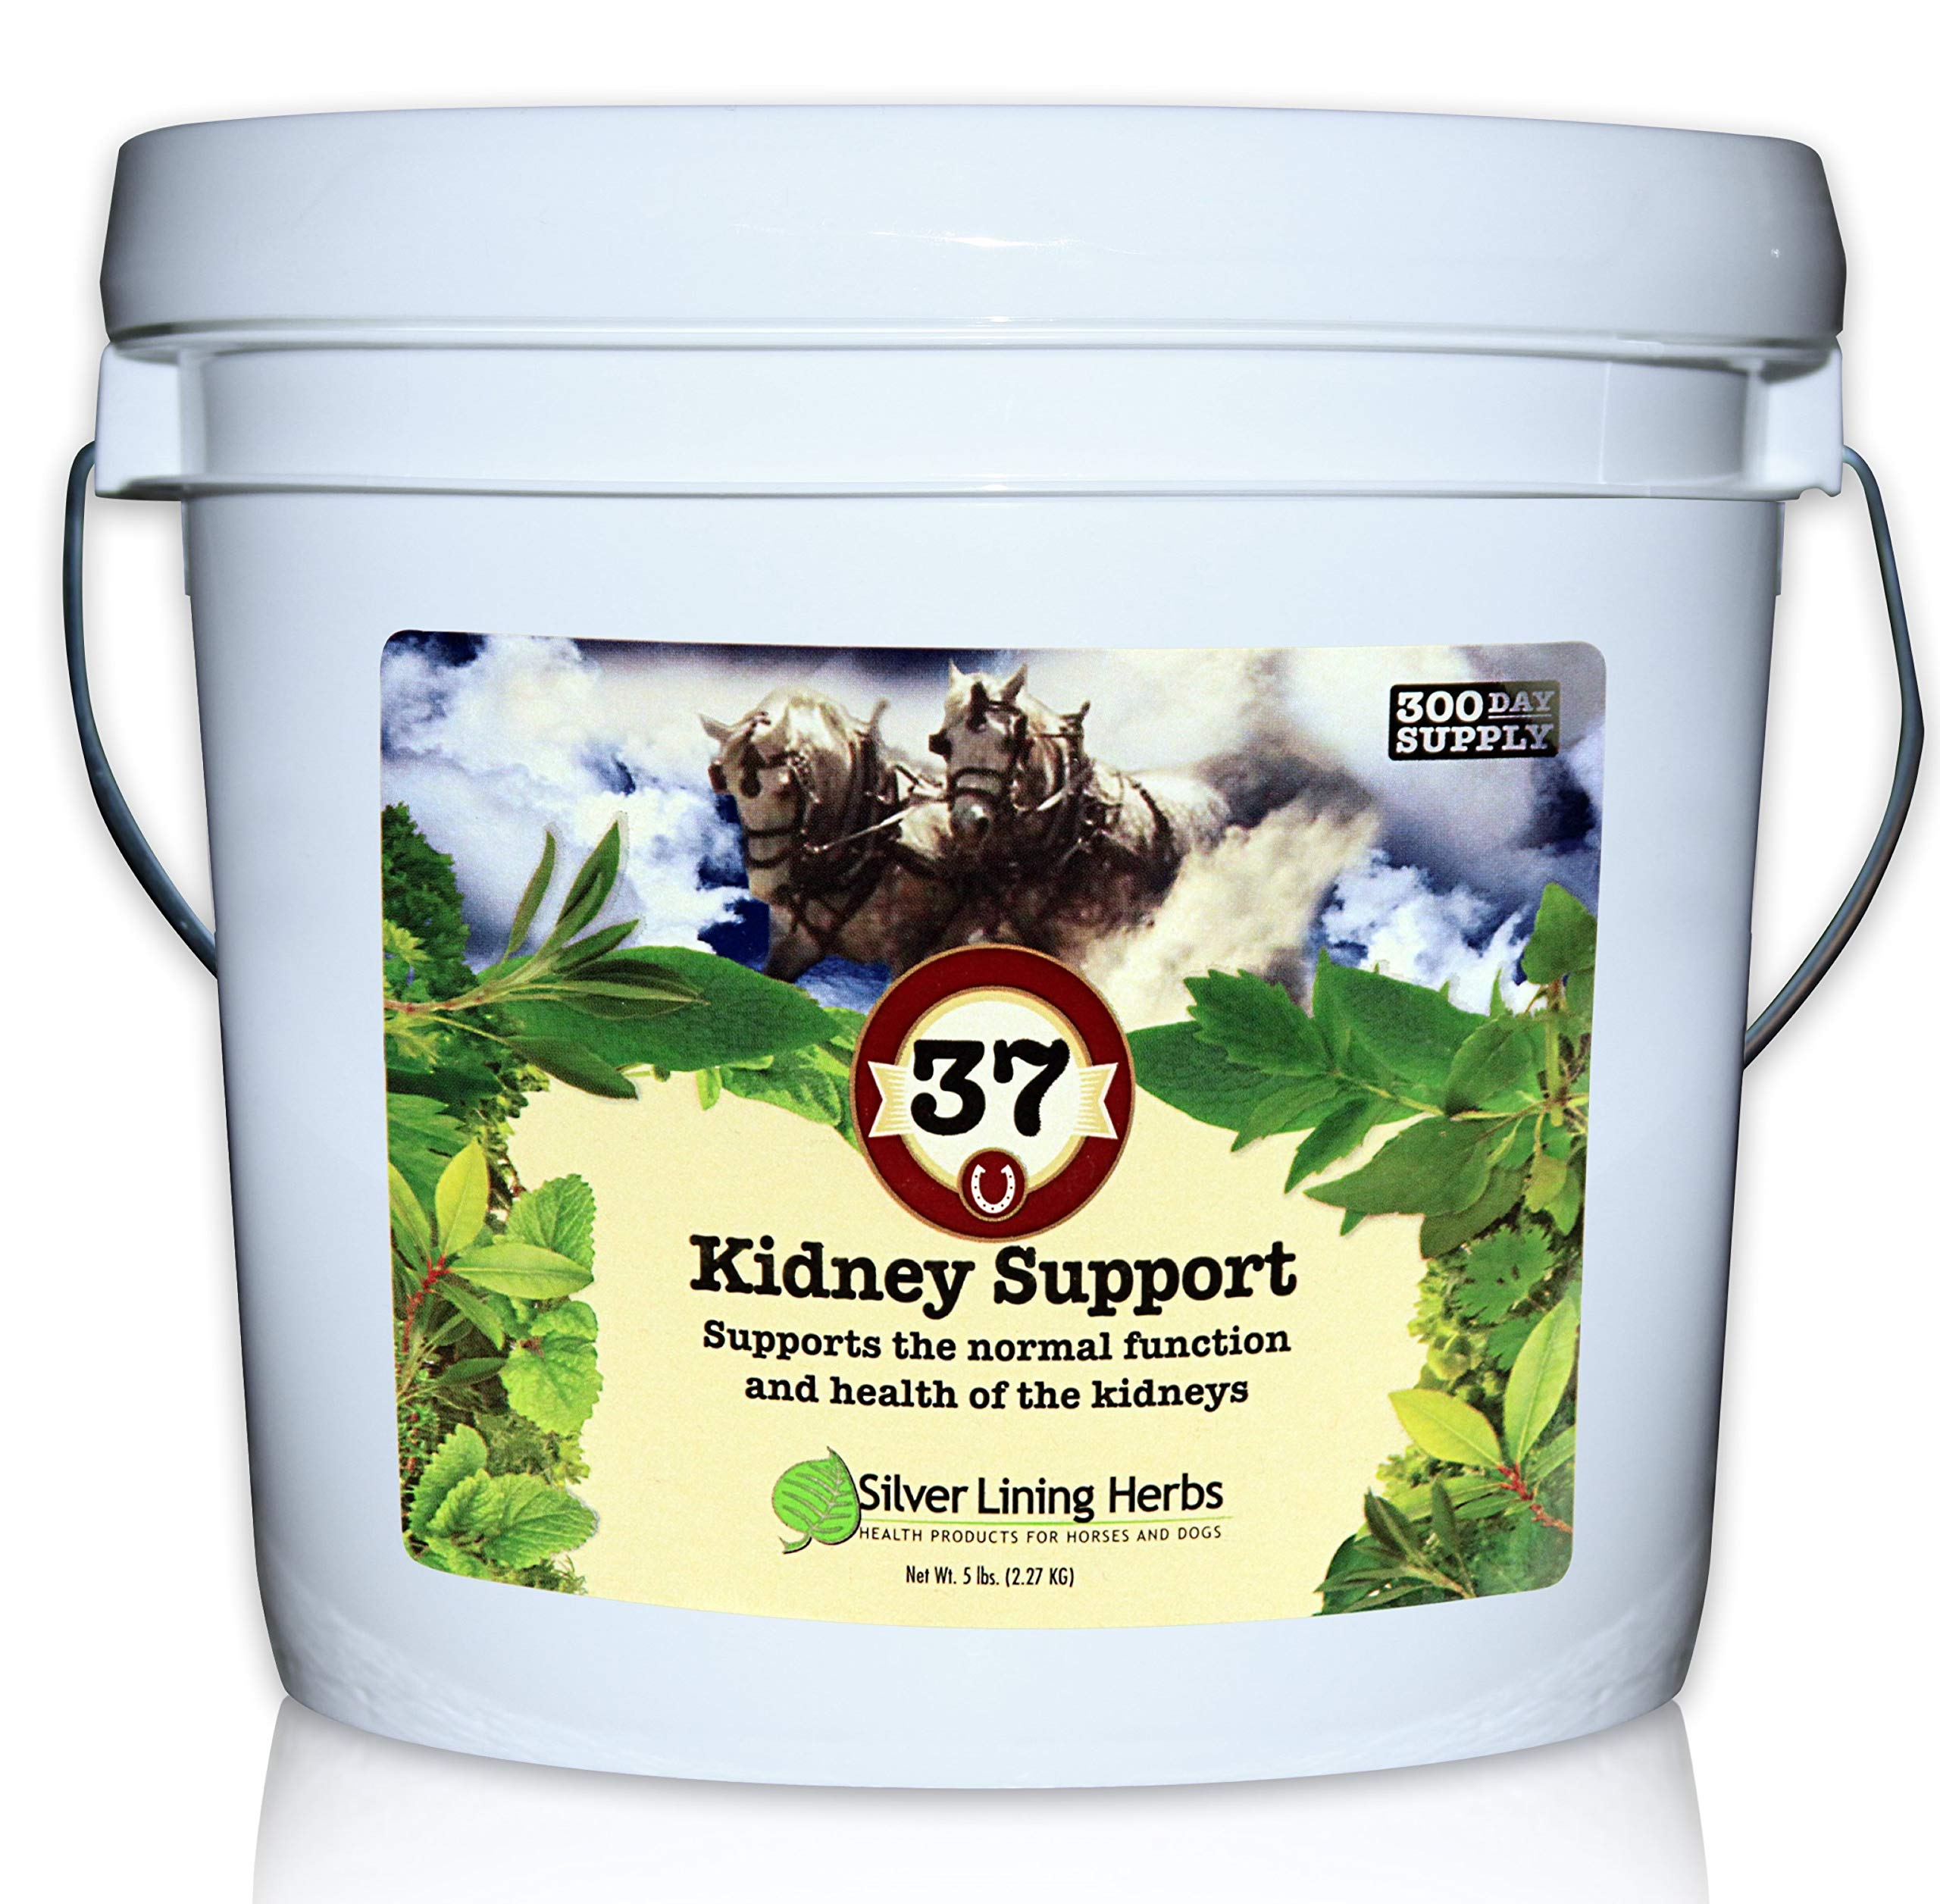 Silver Lining Herbs 37 Kidney Support for Horses| Natural Herbs Support Normal Equine Kidney, Urinary Tract and Bladder Function | 5 Pound Bucket | Made in USA